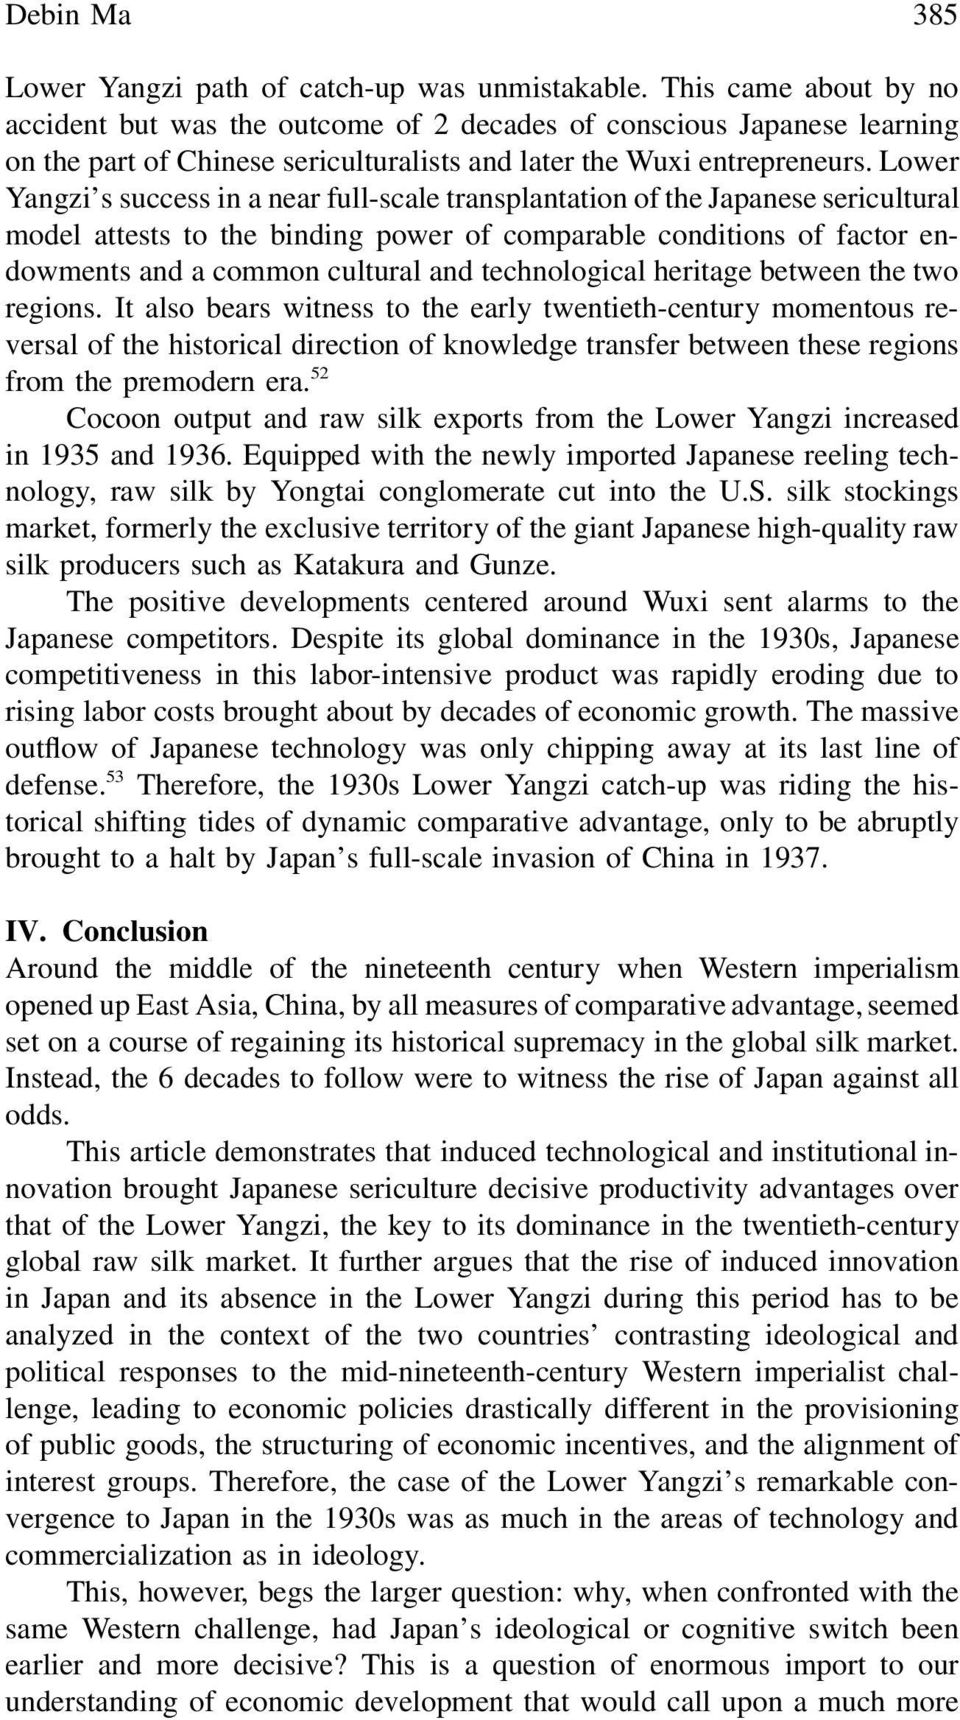 Lower Yangzi s success in a near full-scale transplantation of the Japanese sericultural model attests to the binding power of comparable conditions of factor endowments and a common cultural and